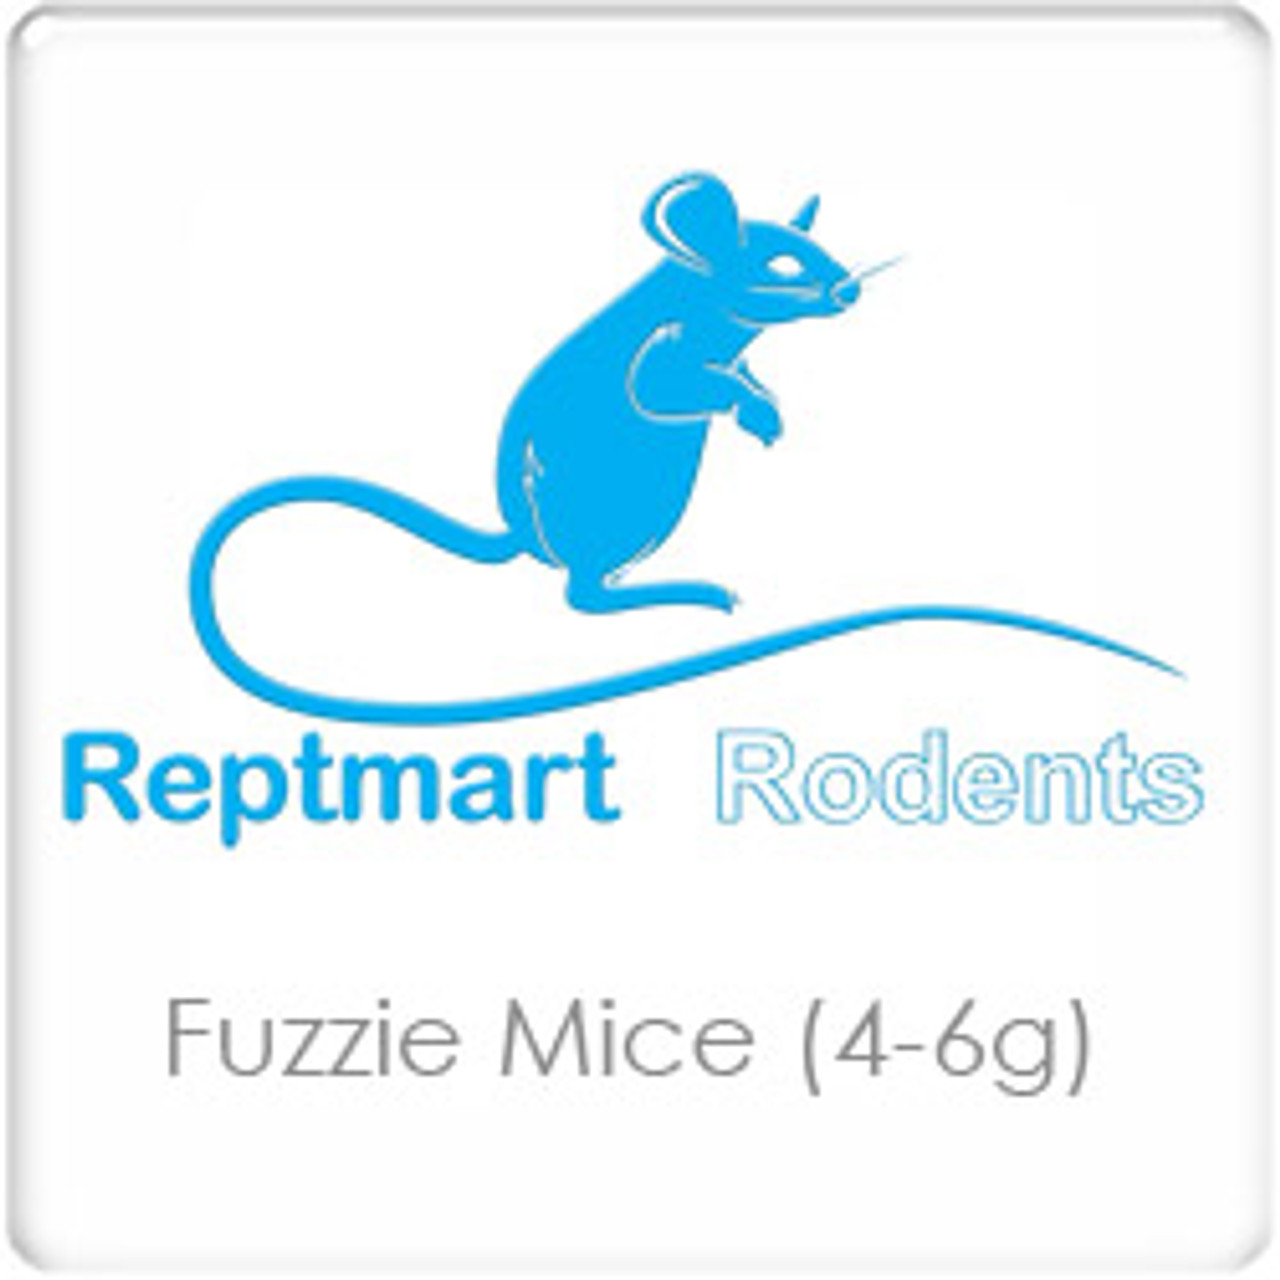 Fuzzie Mice 50 Pack (4-6g)